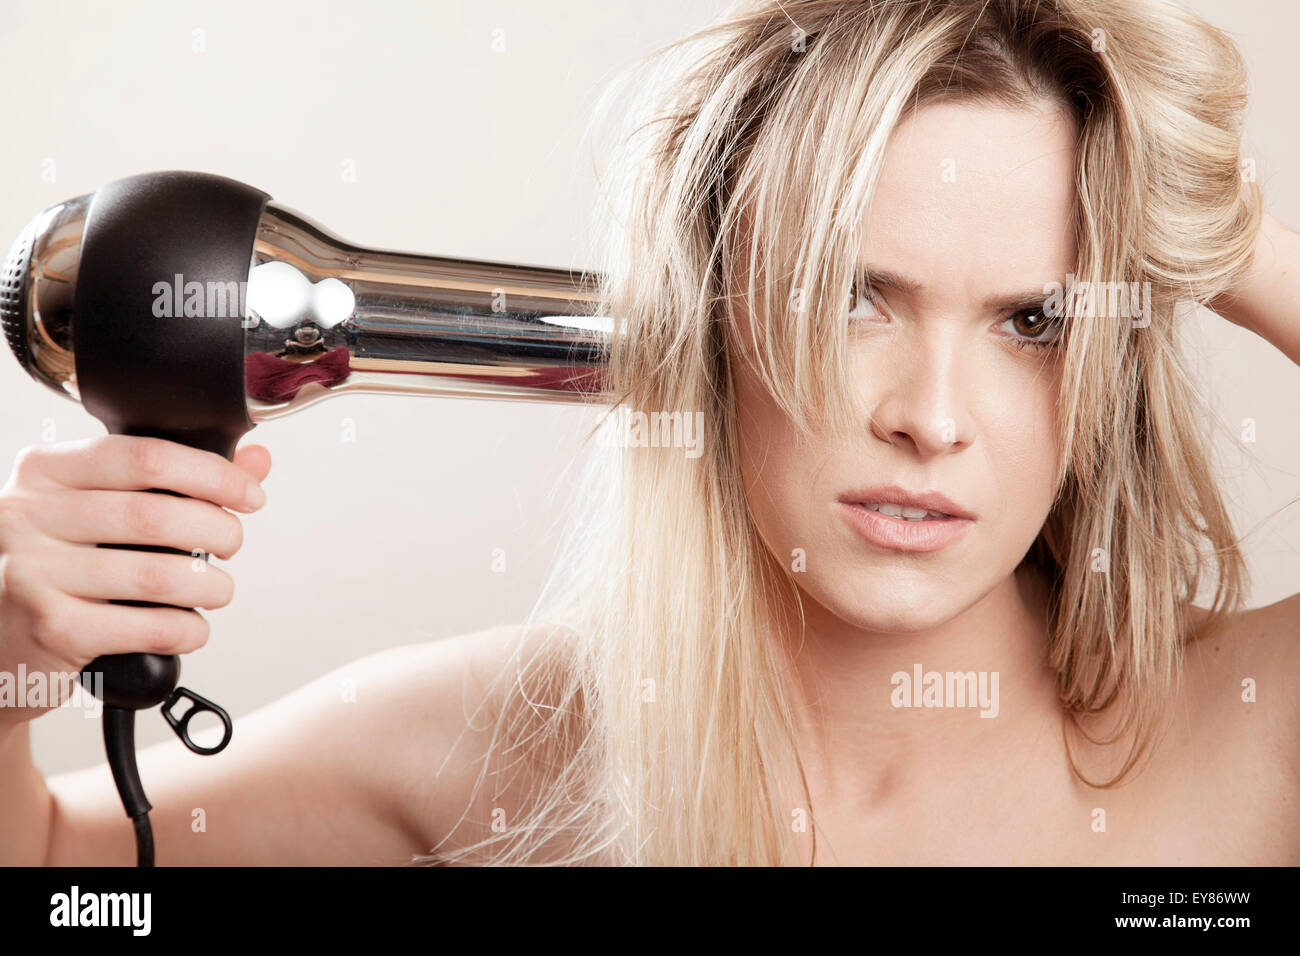 Young woman drying her hair - Stock Image